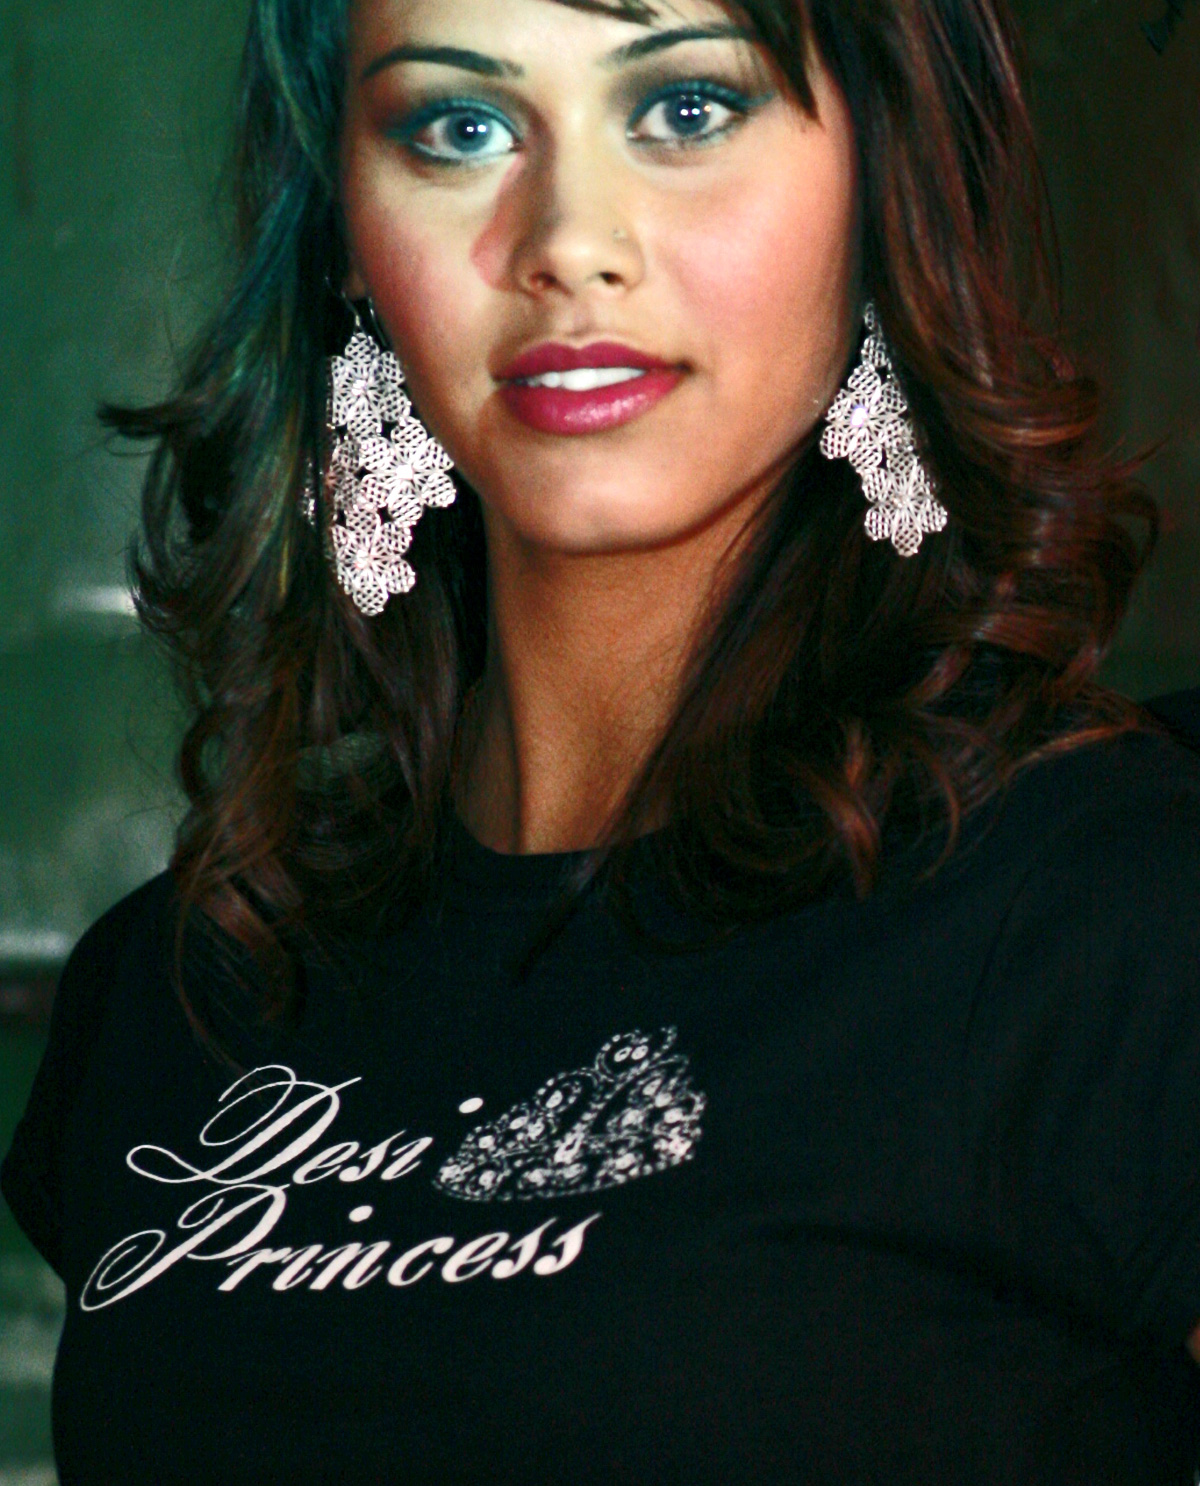 South Asian Female Model wearing Desi Princess T.shirt on Black Fitted shirt. Graphic design t.shirts by Brown Man Clothing Co.